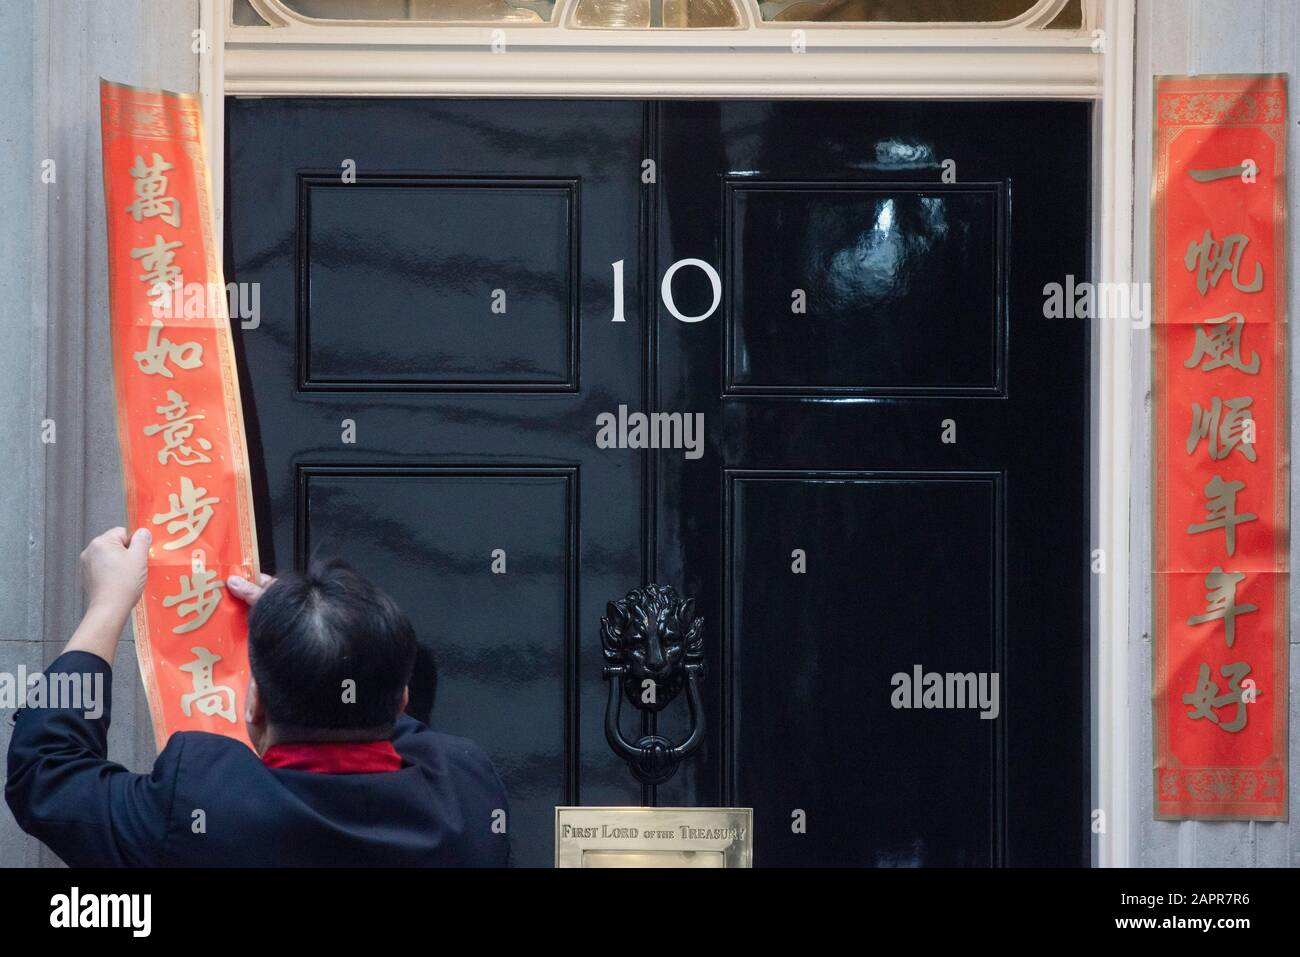 London, UK. 24th Jan, 2020. A man pastes couplets outside 10 Downing Street in London, Britain, Jan. 24, 2020, to celebrate the Chinese Lunar New Year. Credit: Ray Tang/Xinhua/Alamy Live News Stock Photo